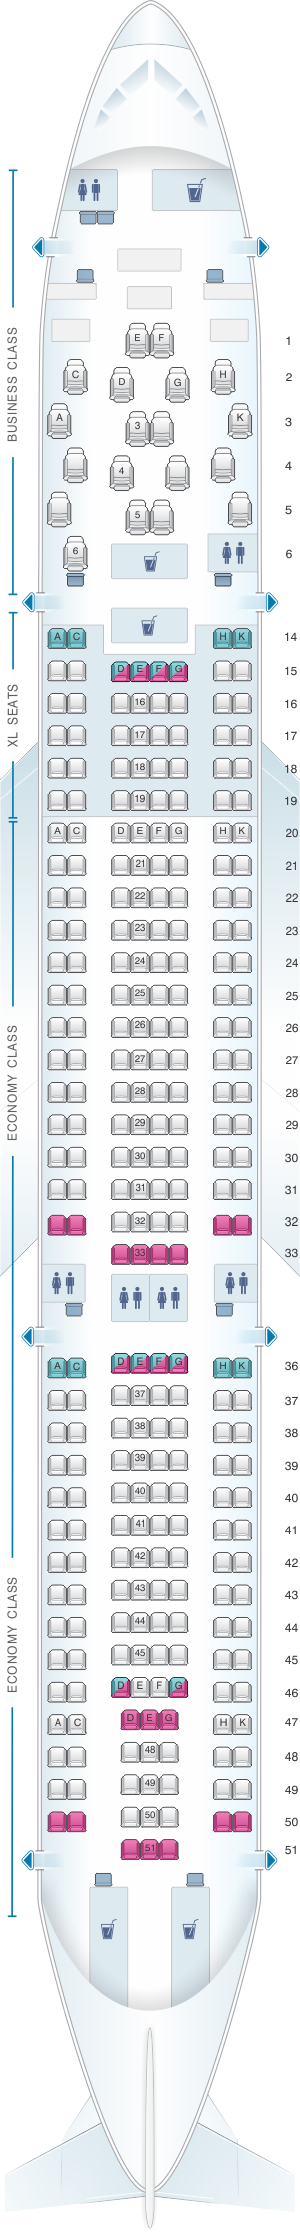 Seat Map airberlin Airbus A330 200